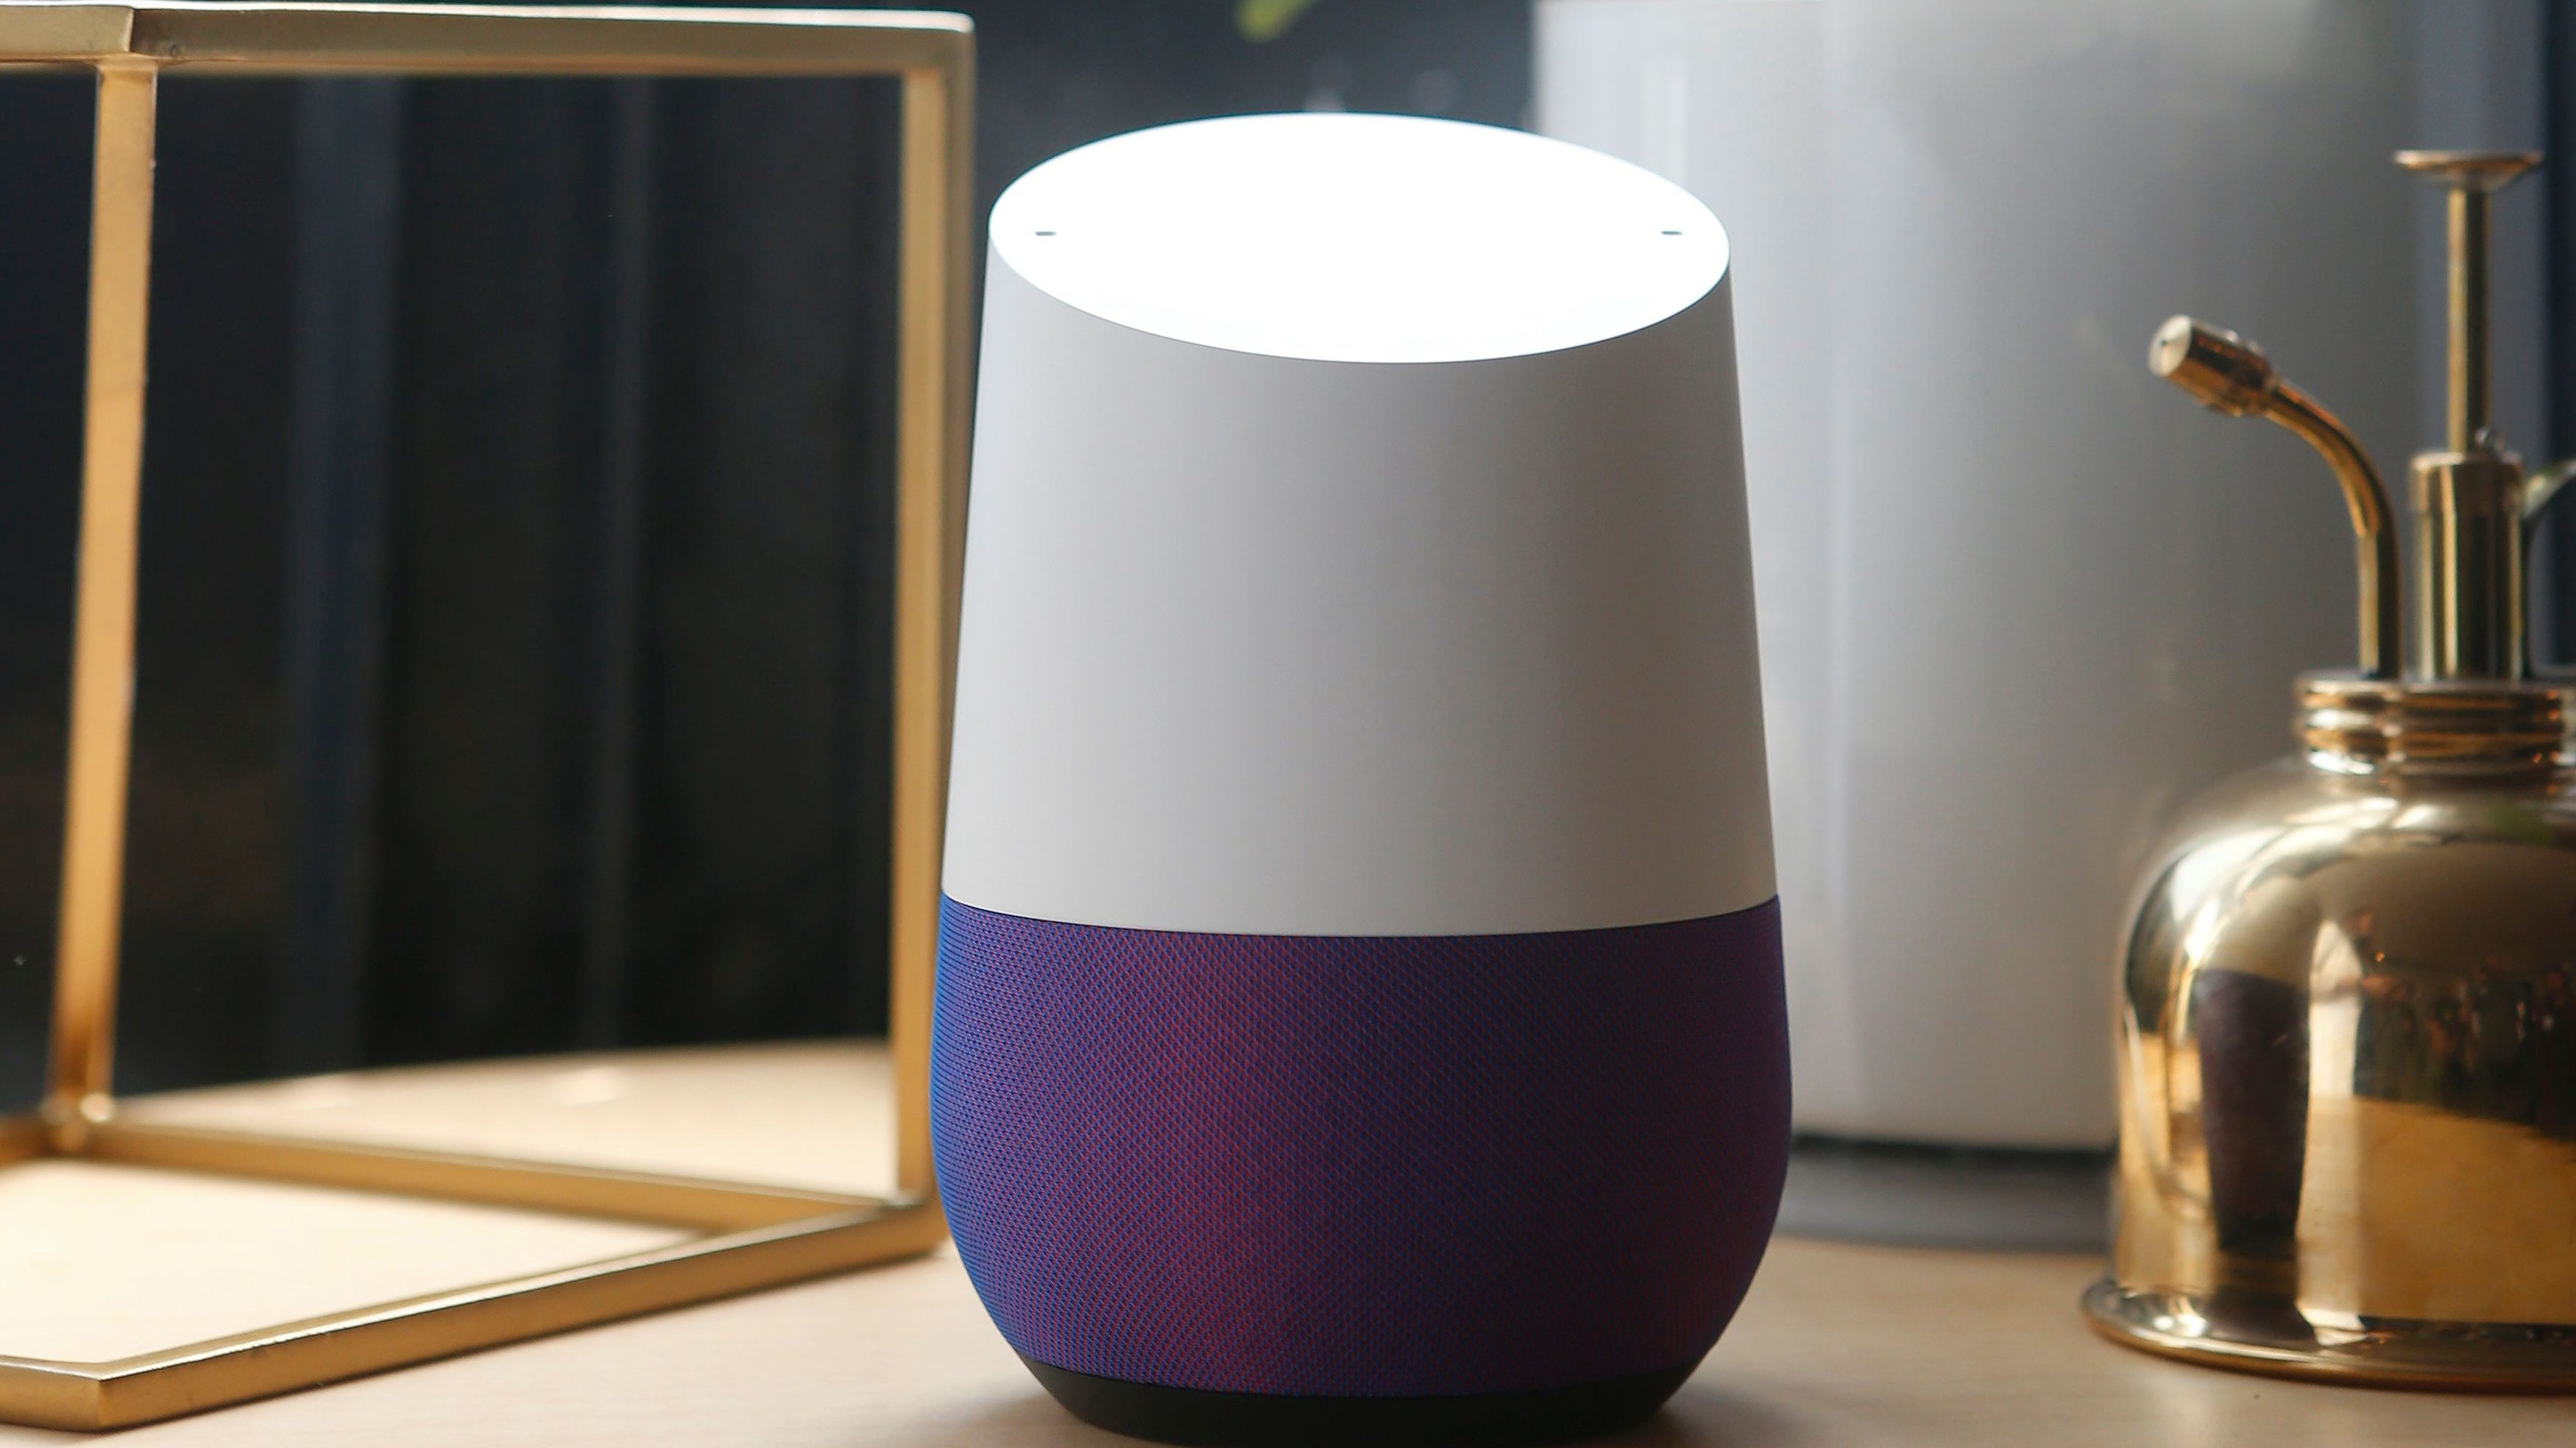 Google Home is displayed during the presentation of new Google hardware in San Francisco, California, U.S. October 4, 2016.  REUTERS/Beck Diefenbach - HT1ECA41EU22H